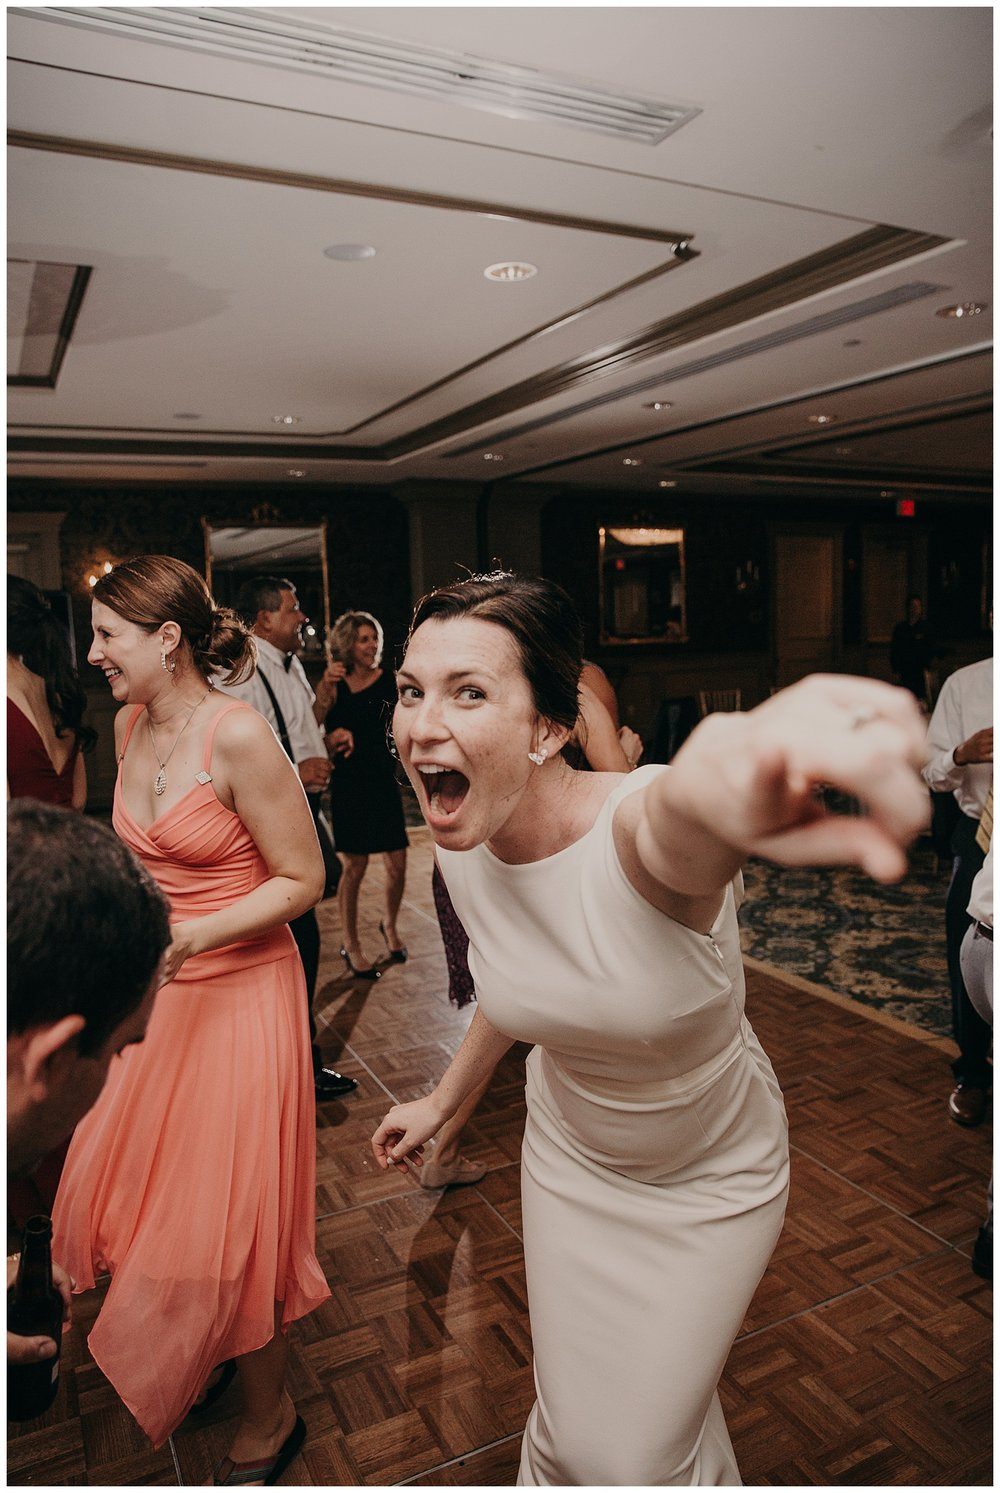 Mike_Kelly_Hotel_Viking_Newport_Rhode_Island_Wedding_032.jpeg